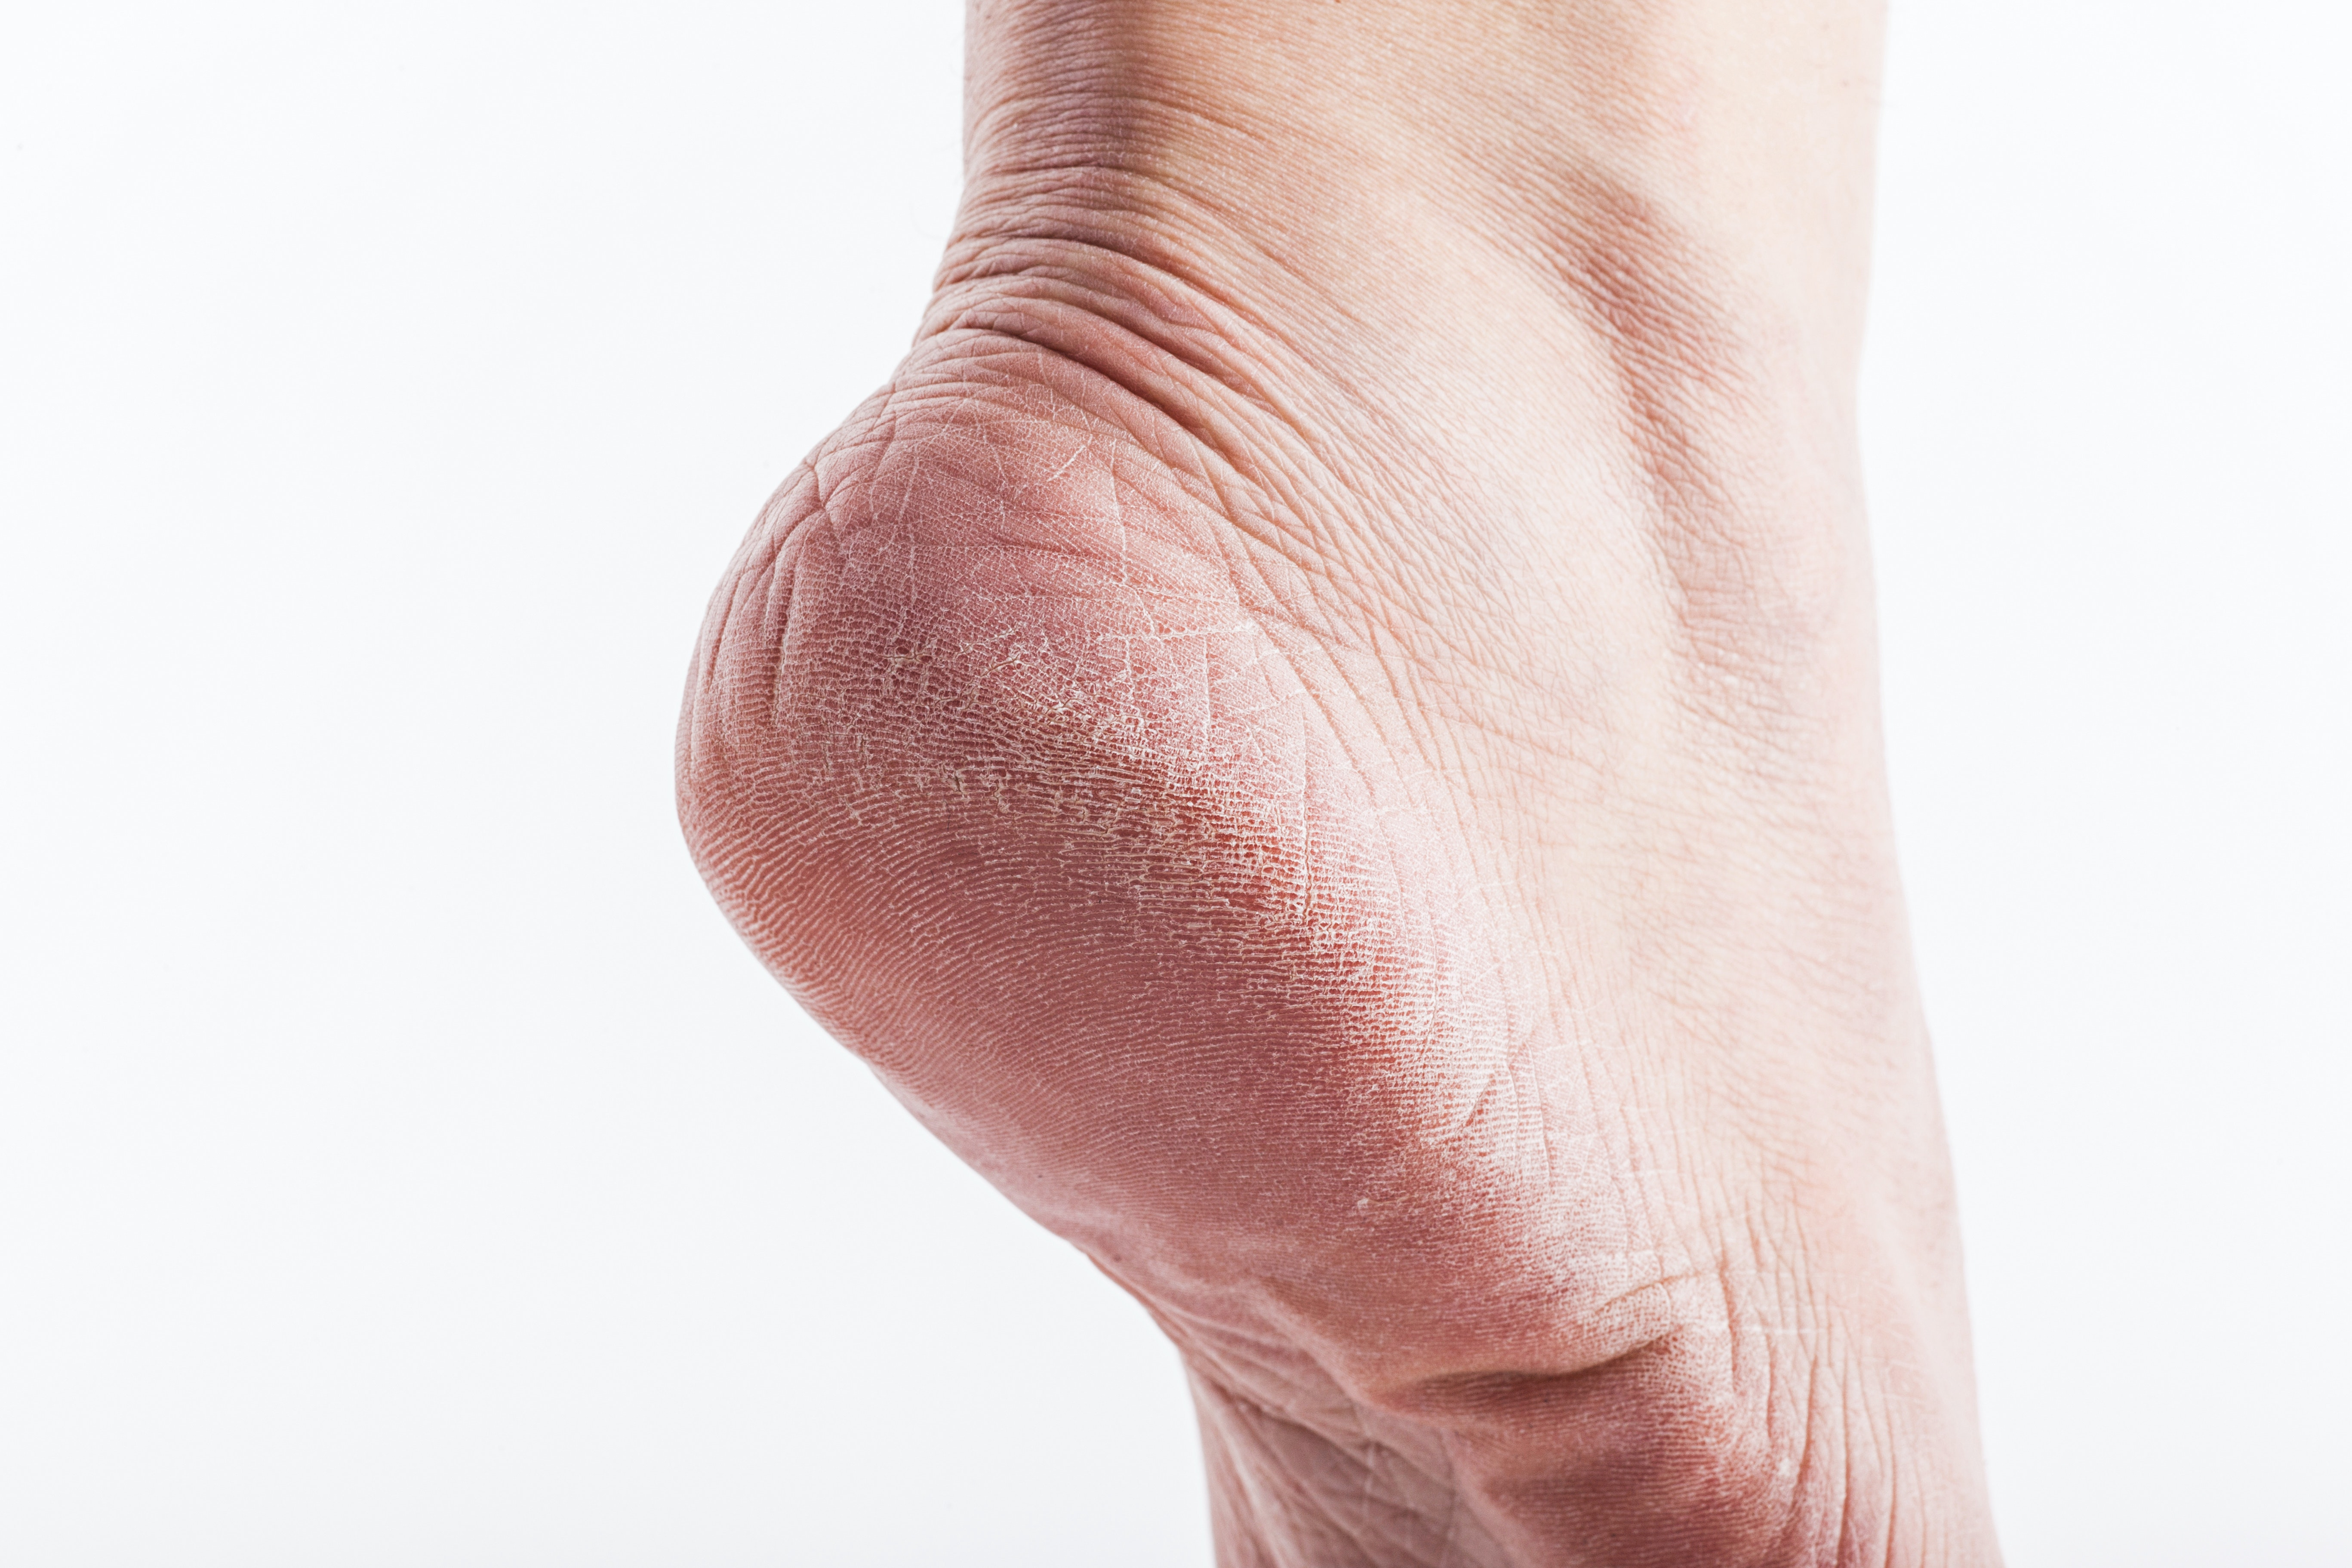 An image depicting a person suffering from skin thickening symptoms